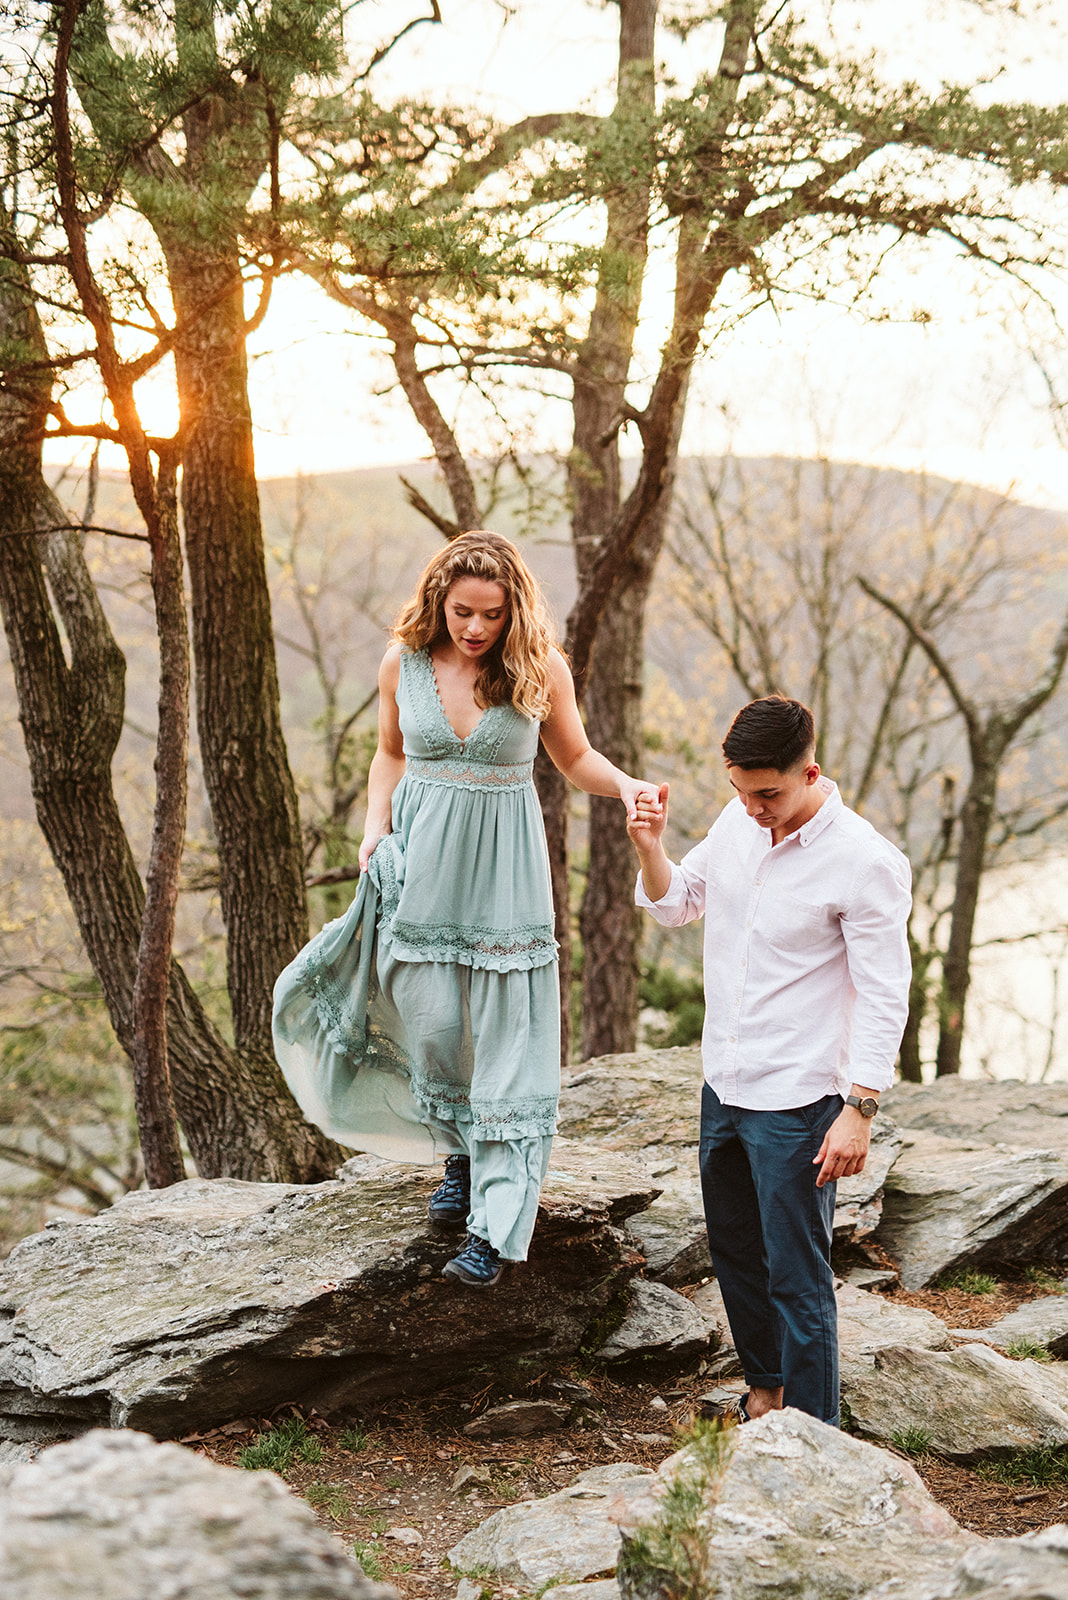 Adventurous elopement and wedding photographer located in Lancaster Pennsylvania.